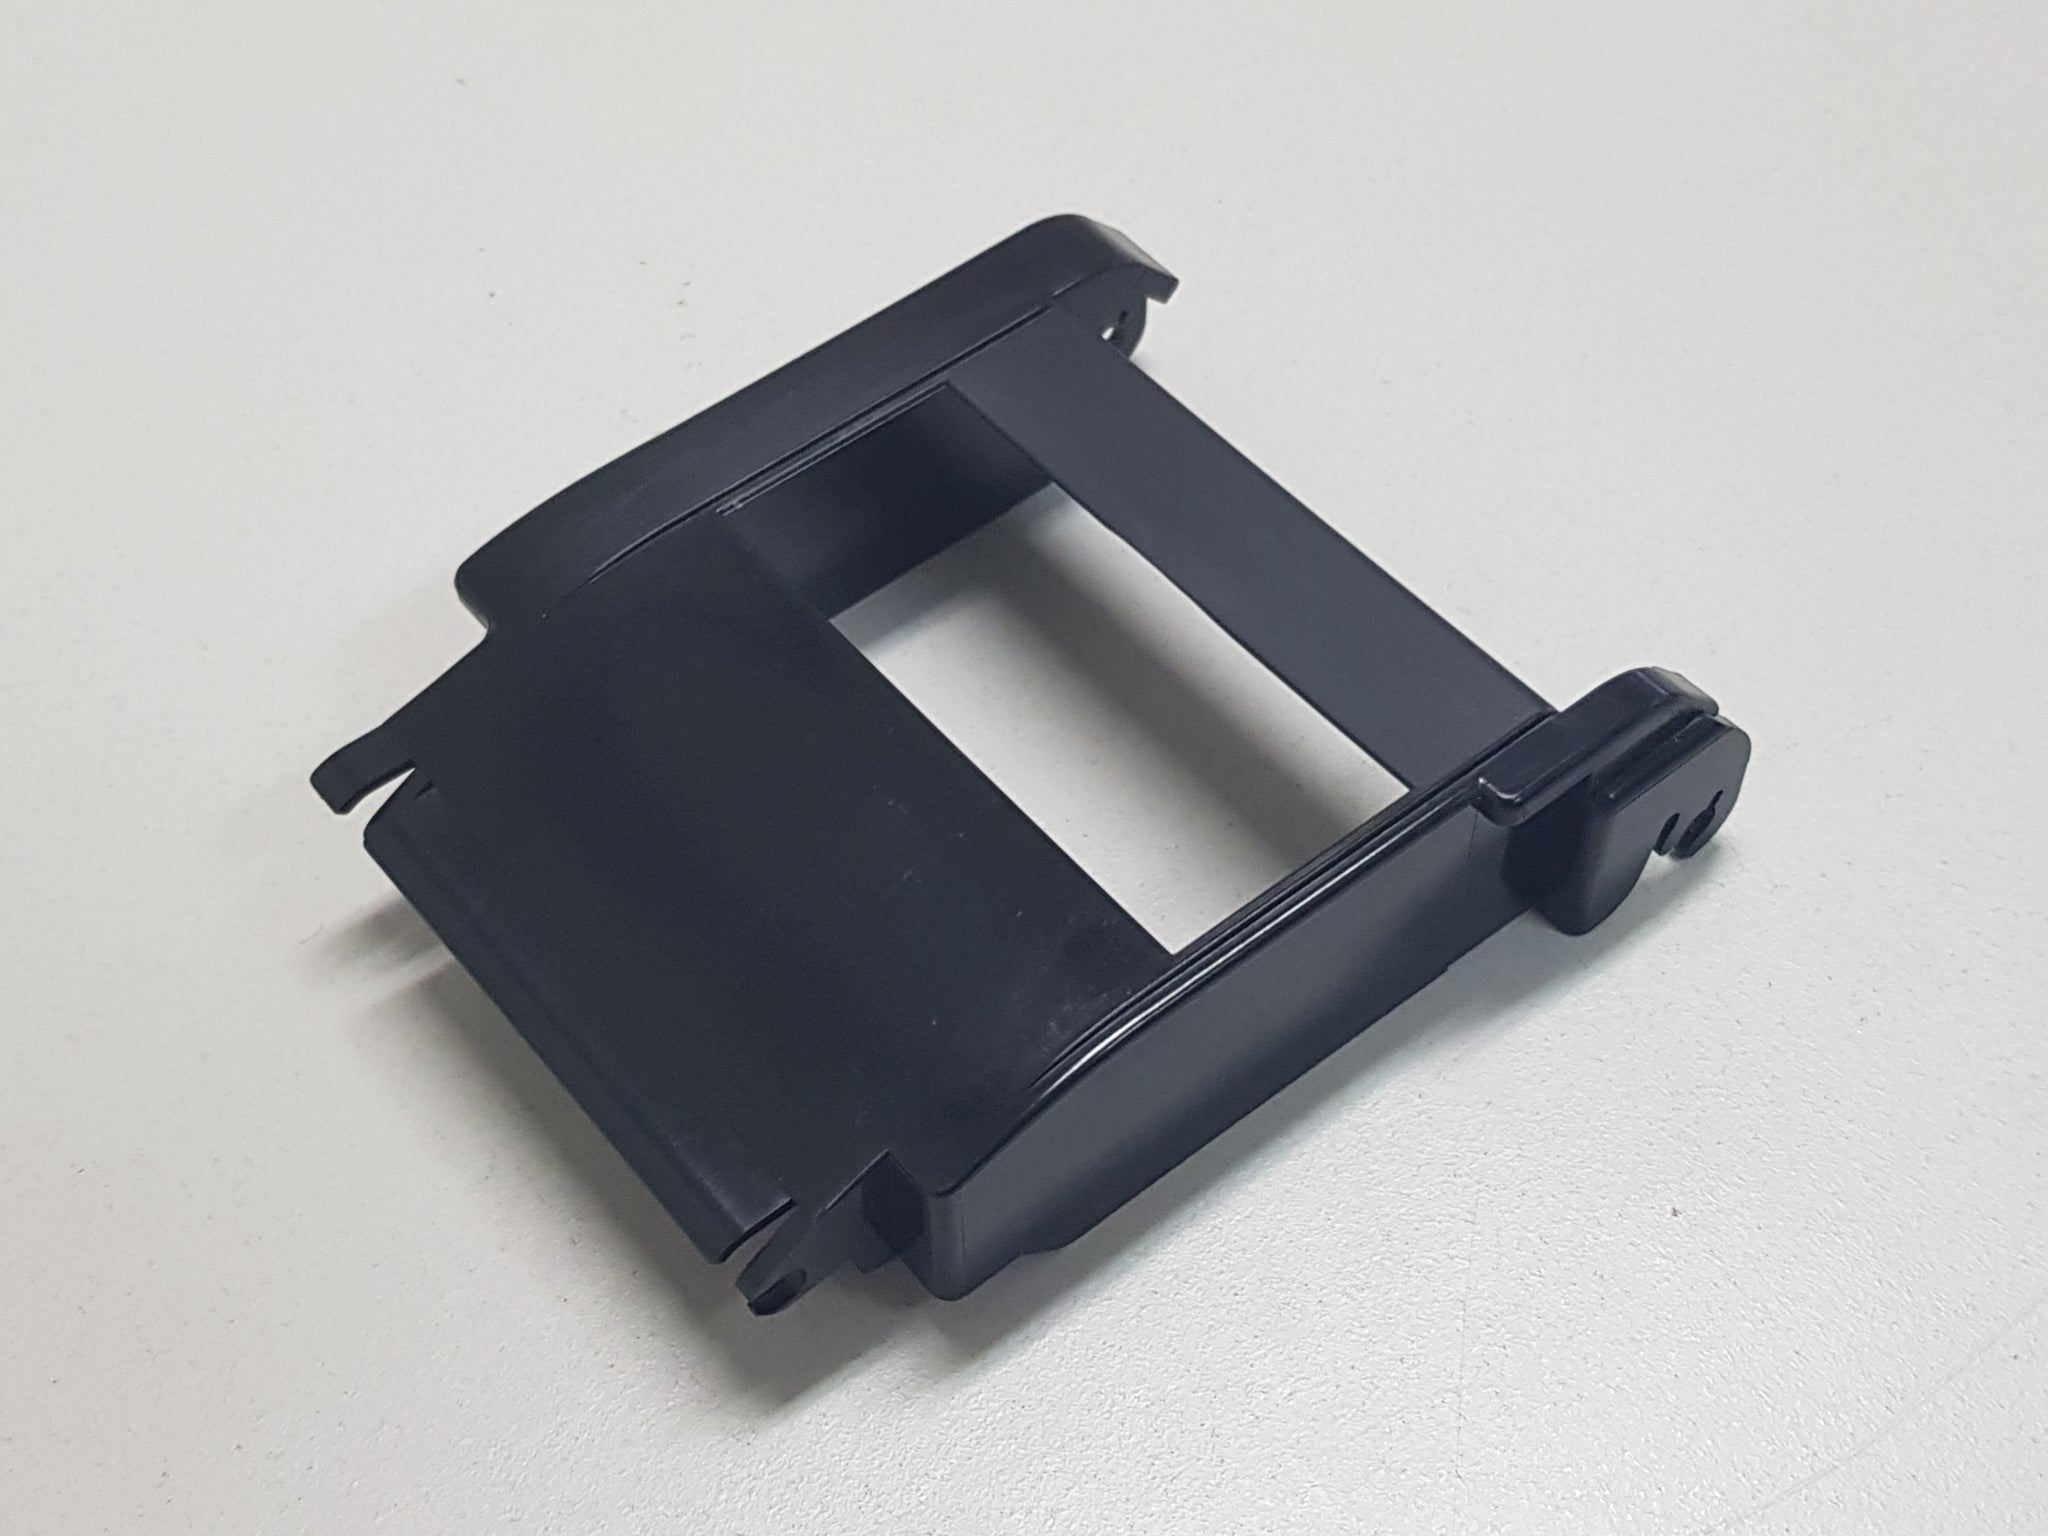 PLATEN ARM (10347352) - CASIO CASH REGISTER